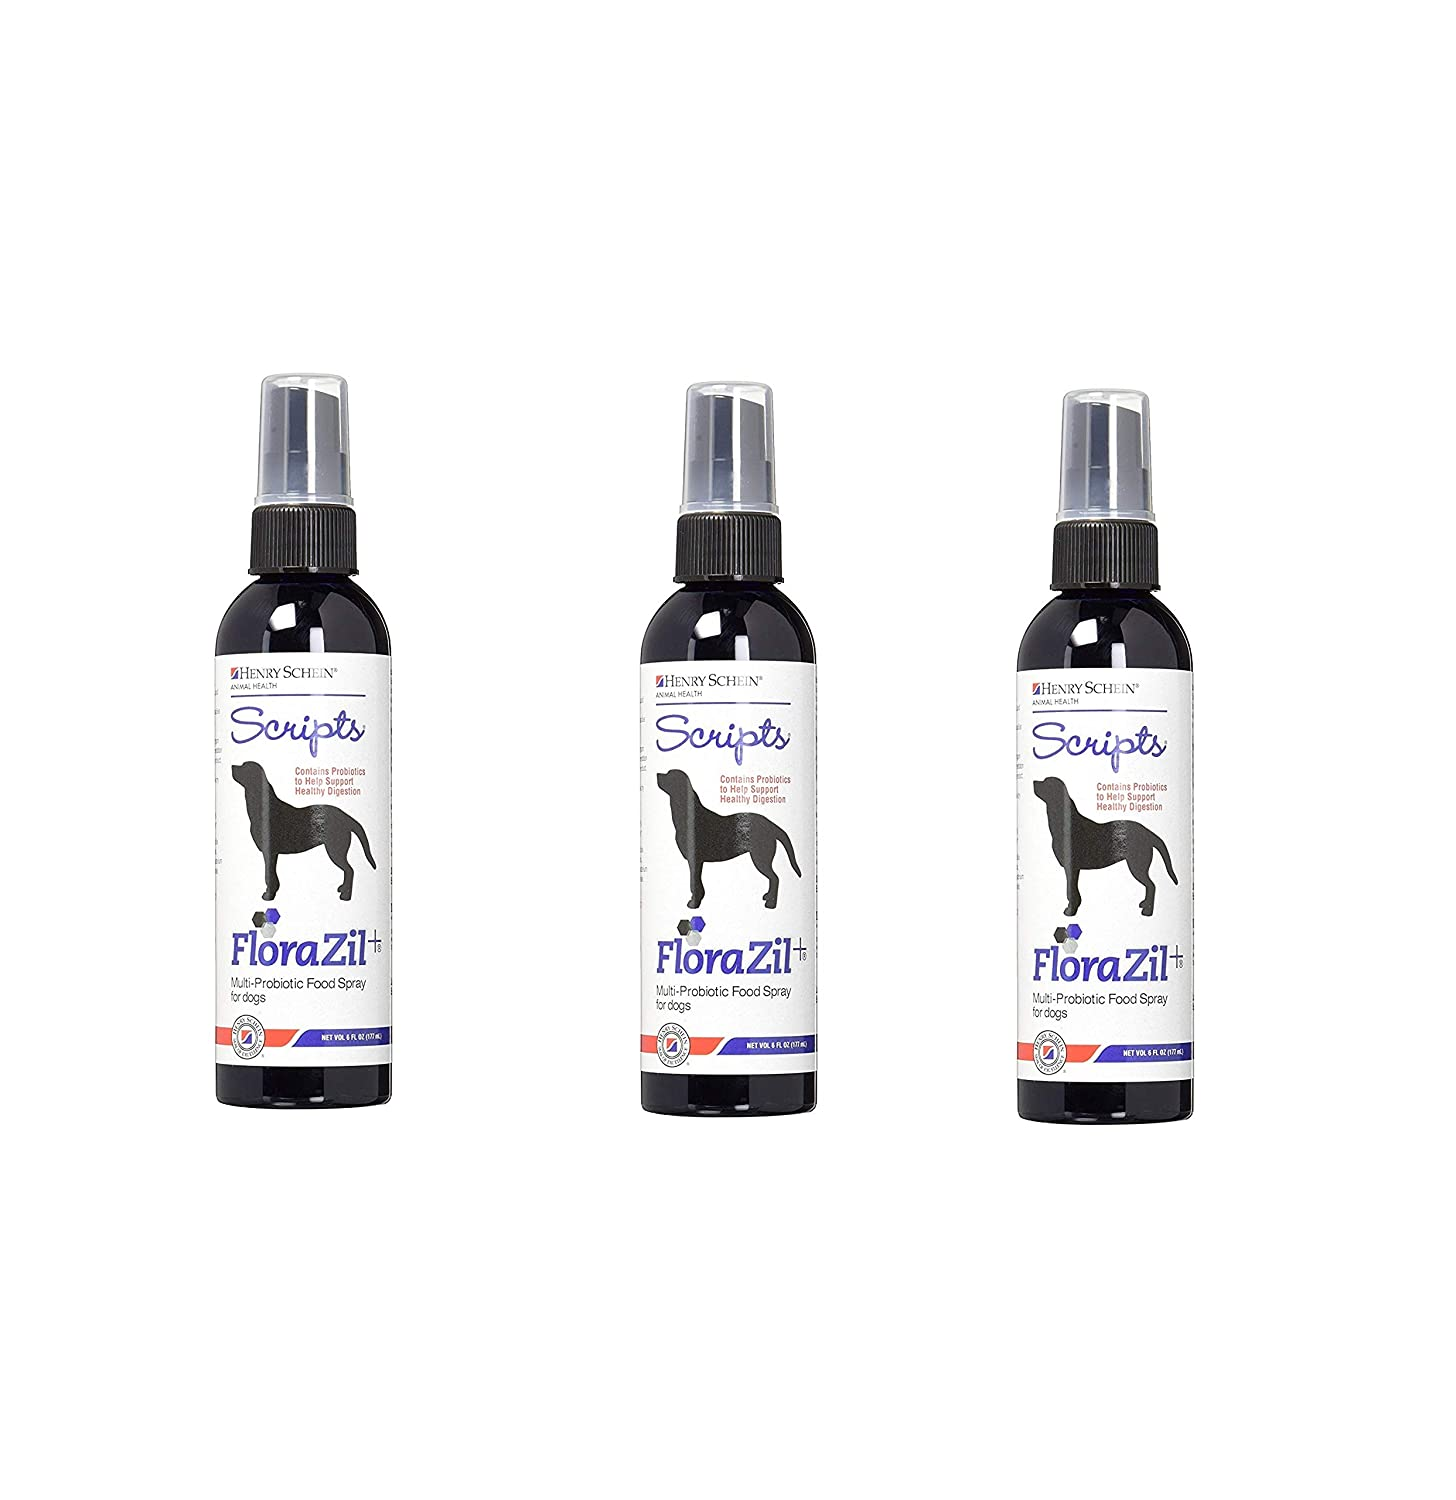 Florazil MultiProbiotic Food Spray for Dogs 6 oz